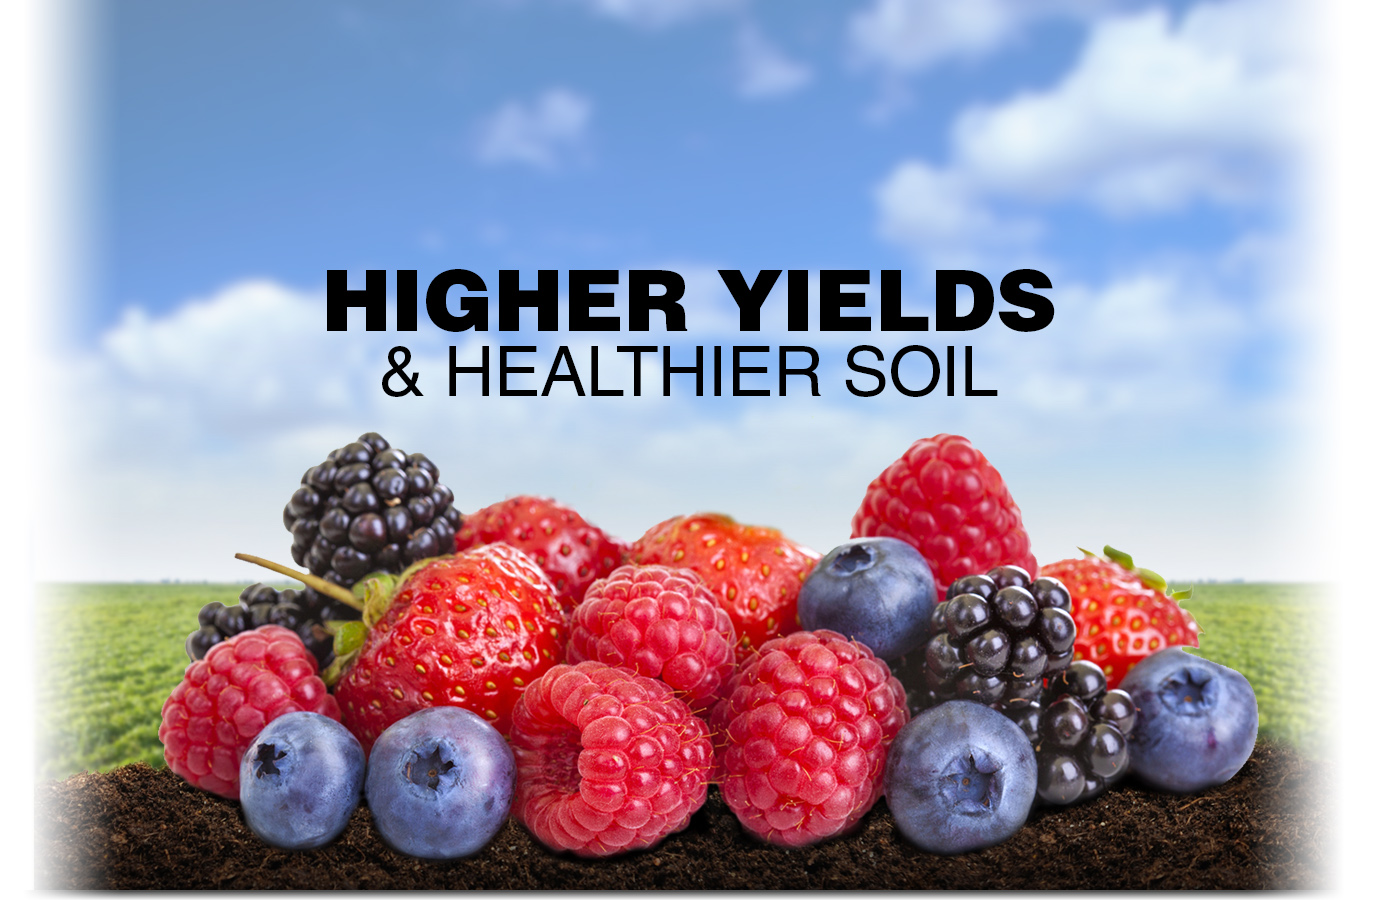 Use Grassoline Organic fish fertilizer for Higher yields and healthier soil